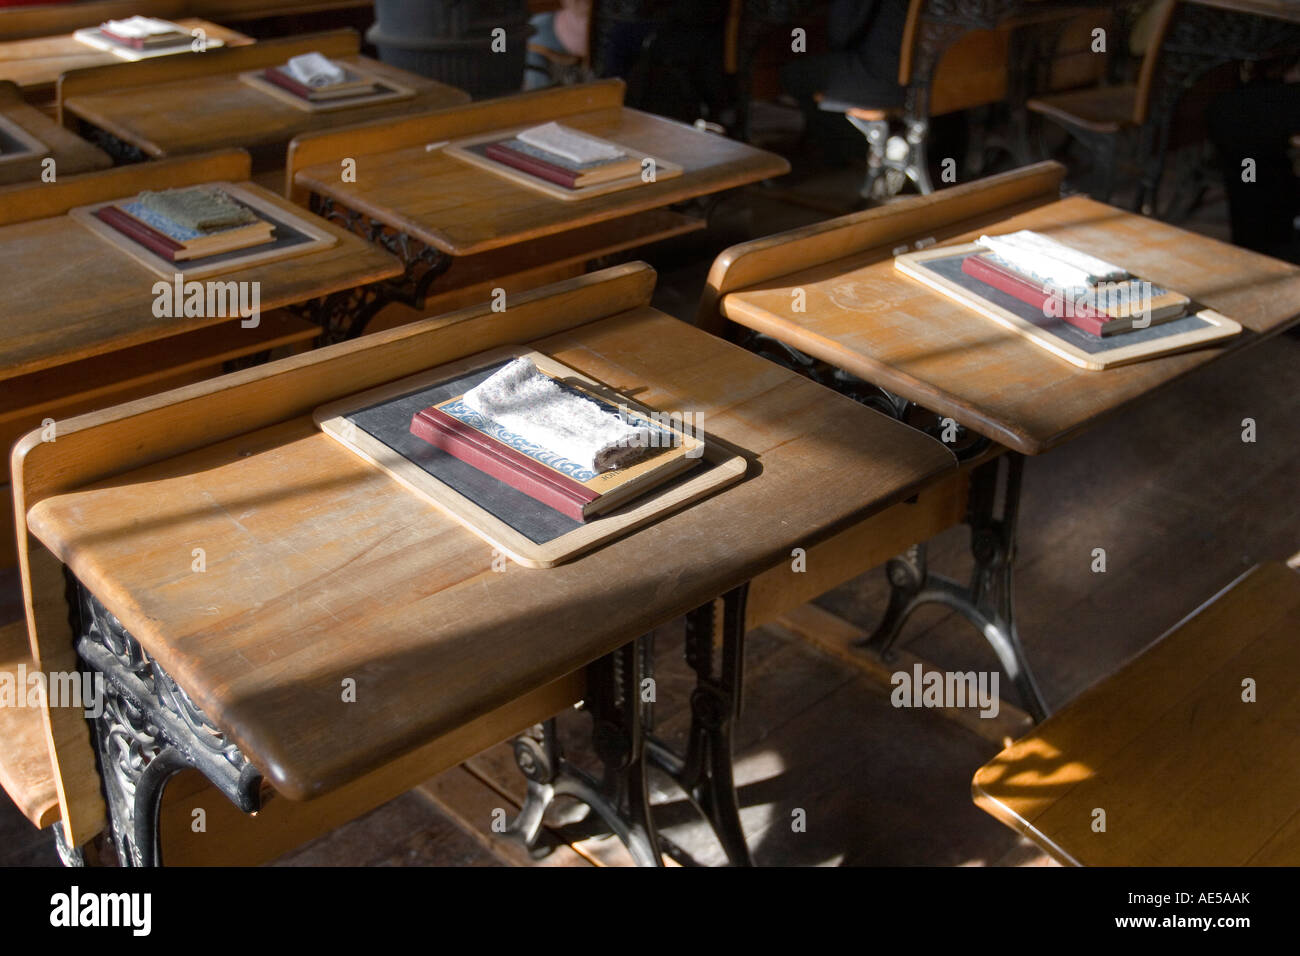 Old Style Classroom Desks In Replica Of 1800s Era One Room Schoolhouse With  Chalkboards Books And Cloth Erasers